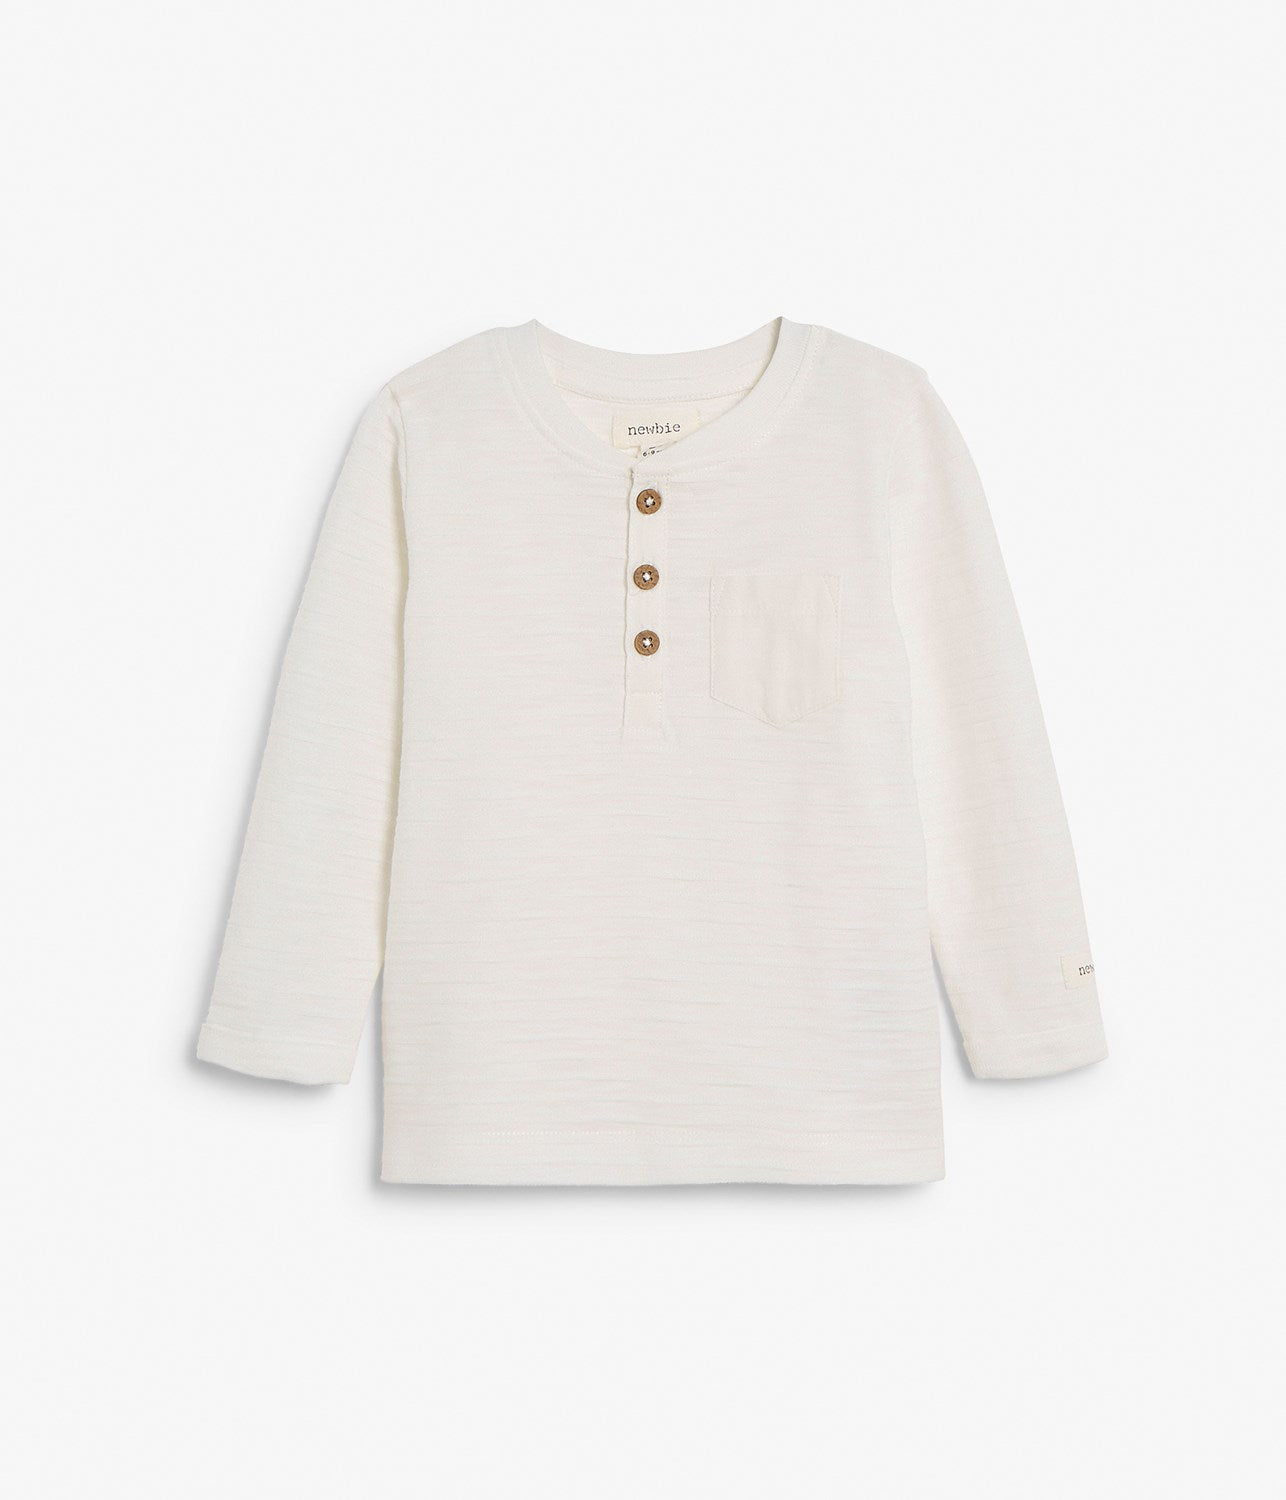 Baby white basic long sleeve top